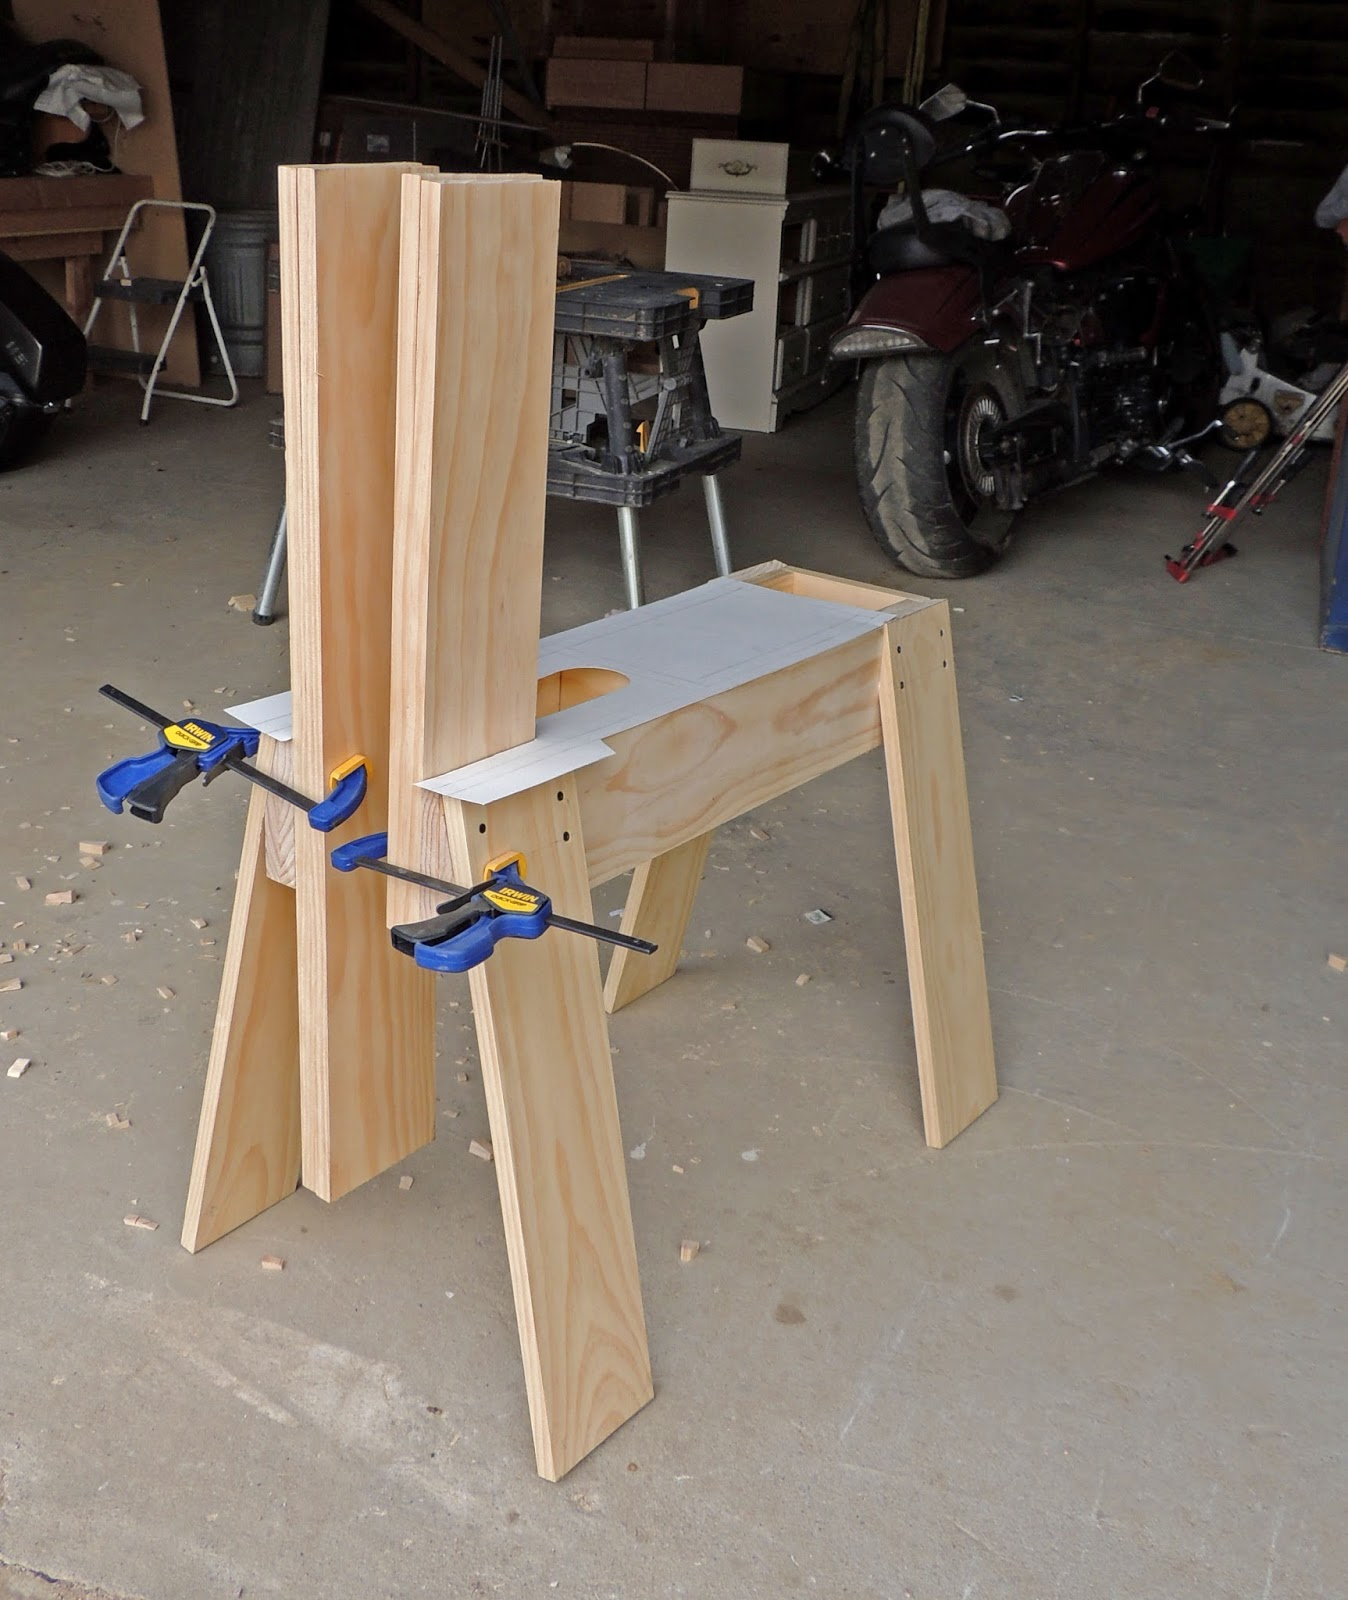 Constructing a saddler's stitching horse